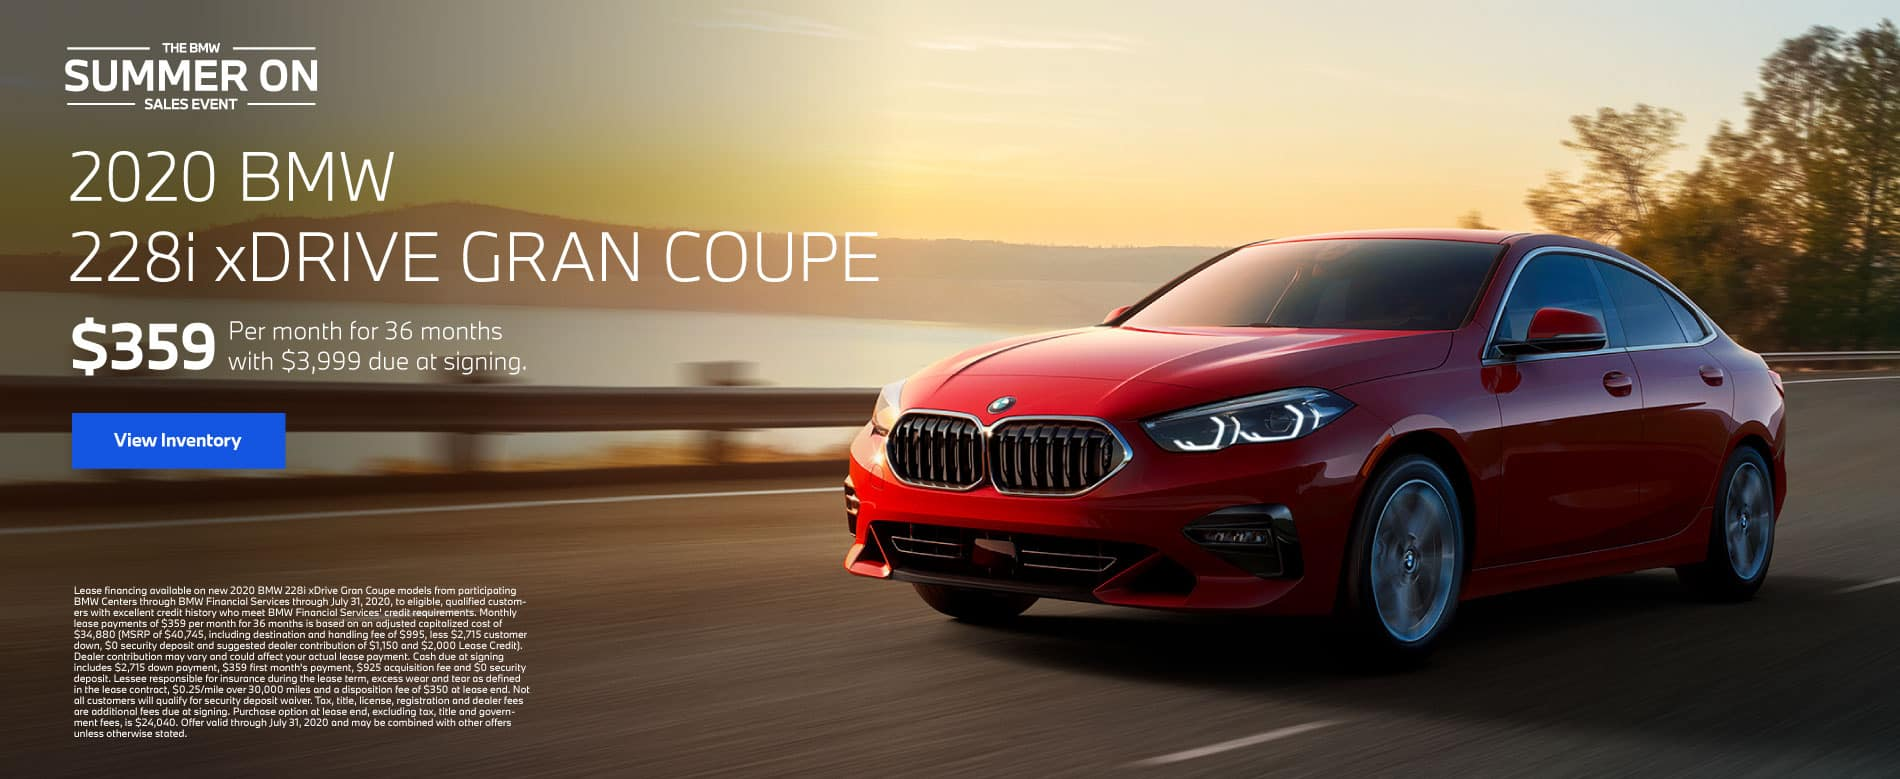 2020 BMW 228i xDrive Gran Coupe $359 a month for 36 months | View Inventory